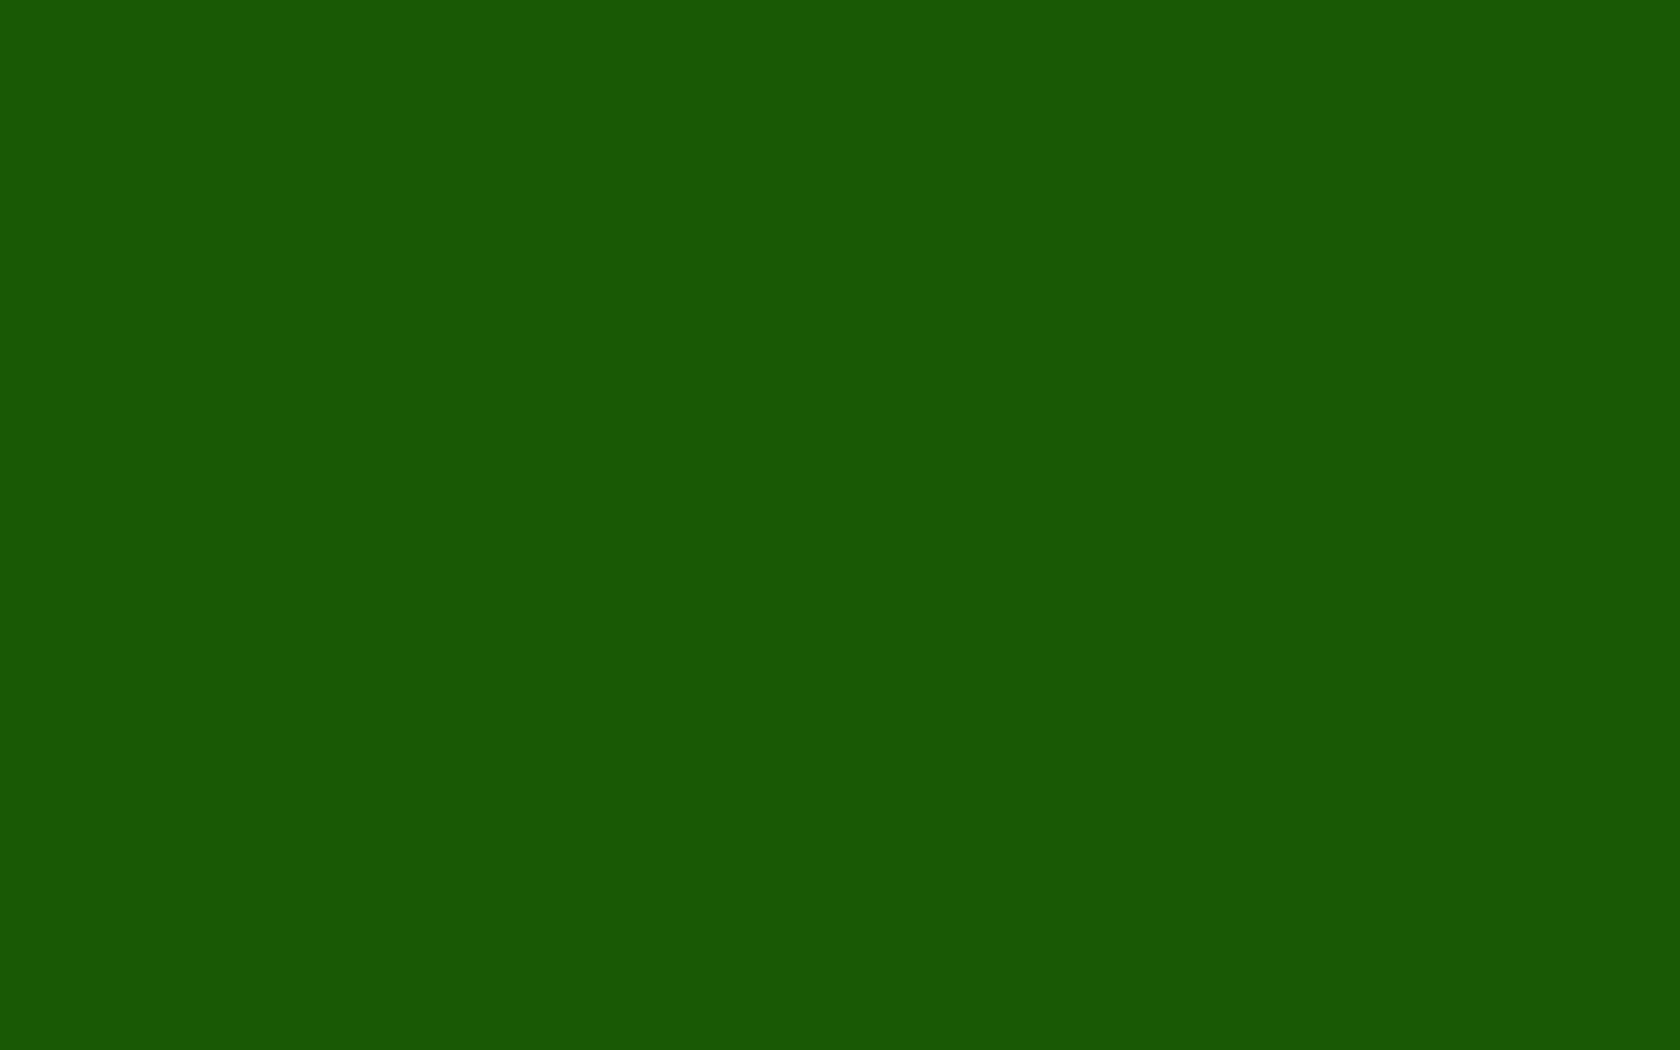 1680x1050 Lincoln Green Solid Color Background